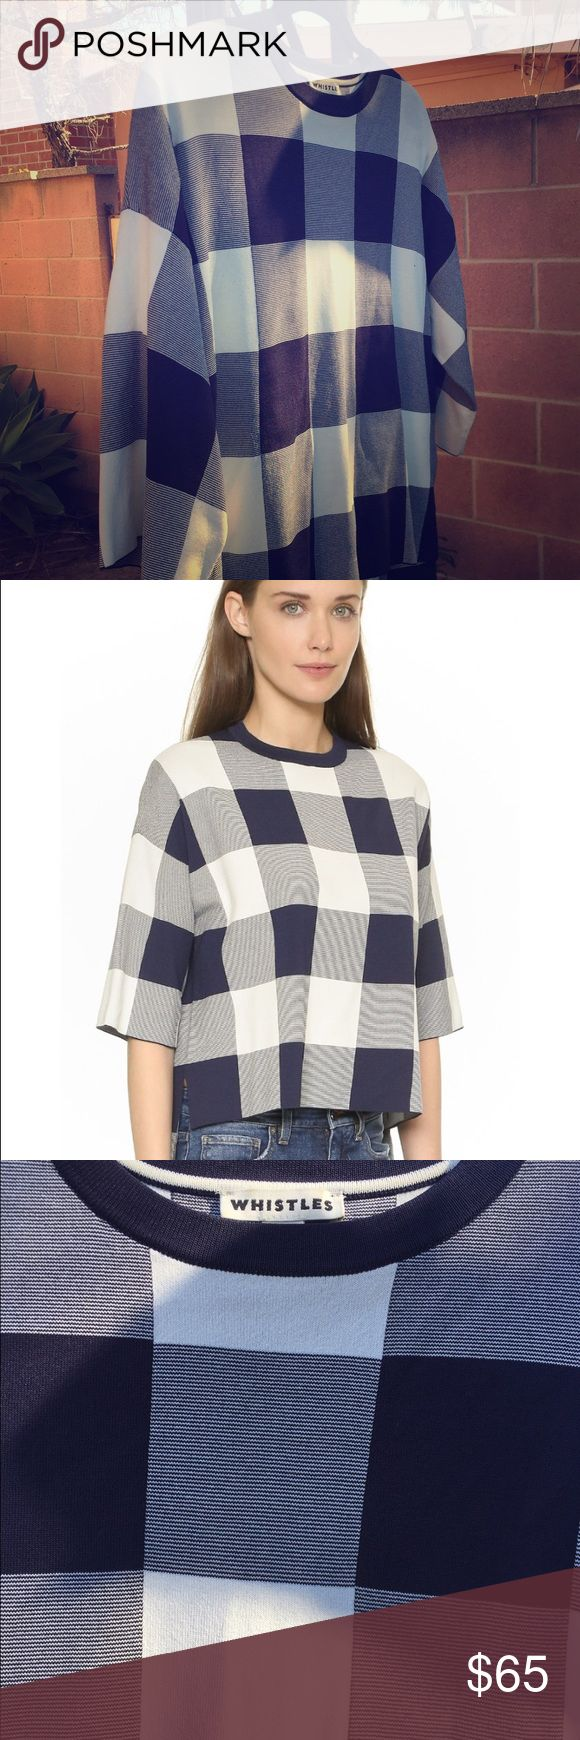 "Whistles ""Clark"" Knit Gingham Top A double-layered Whistles top with a boxy silhouette and checked pattern. High-low hem and side slits. Dropped shoulders and half sleeves. Worn once, in new condition! Whistles Tops Blouses"